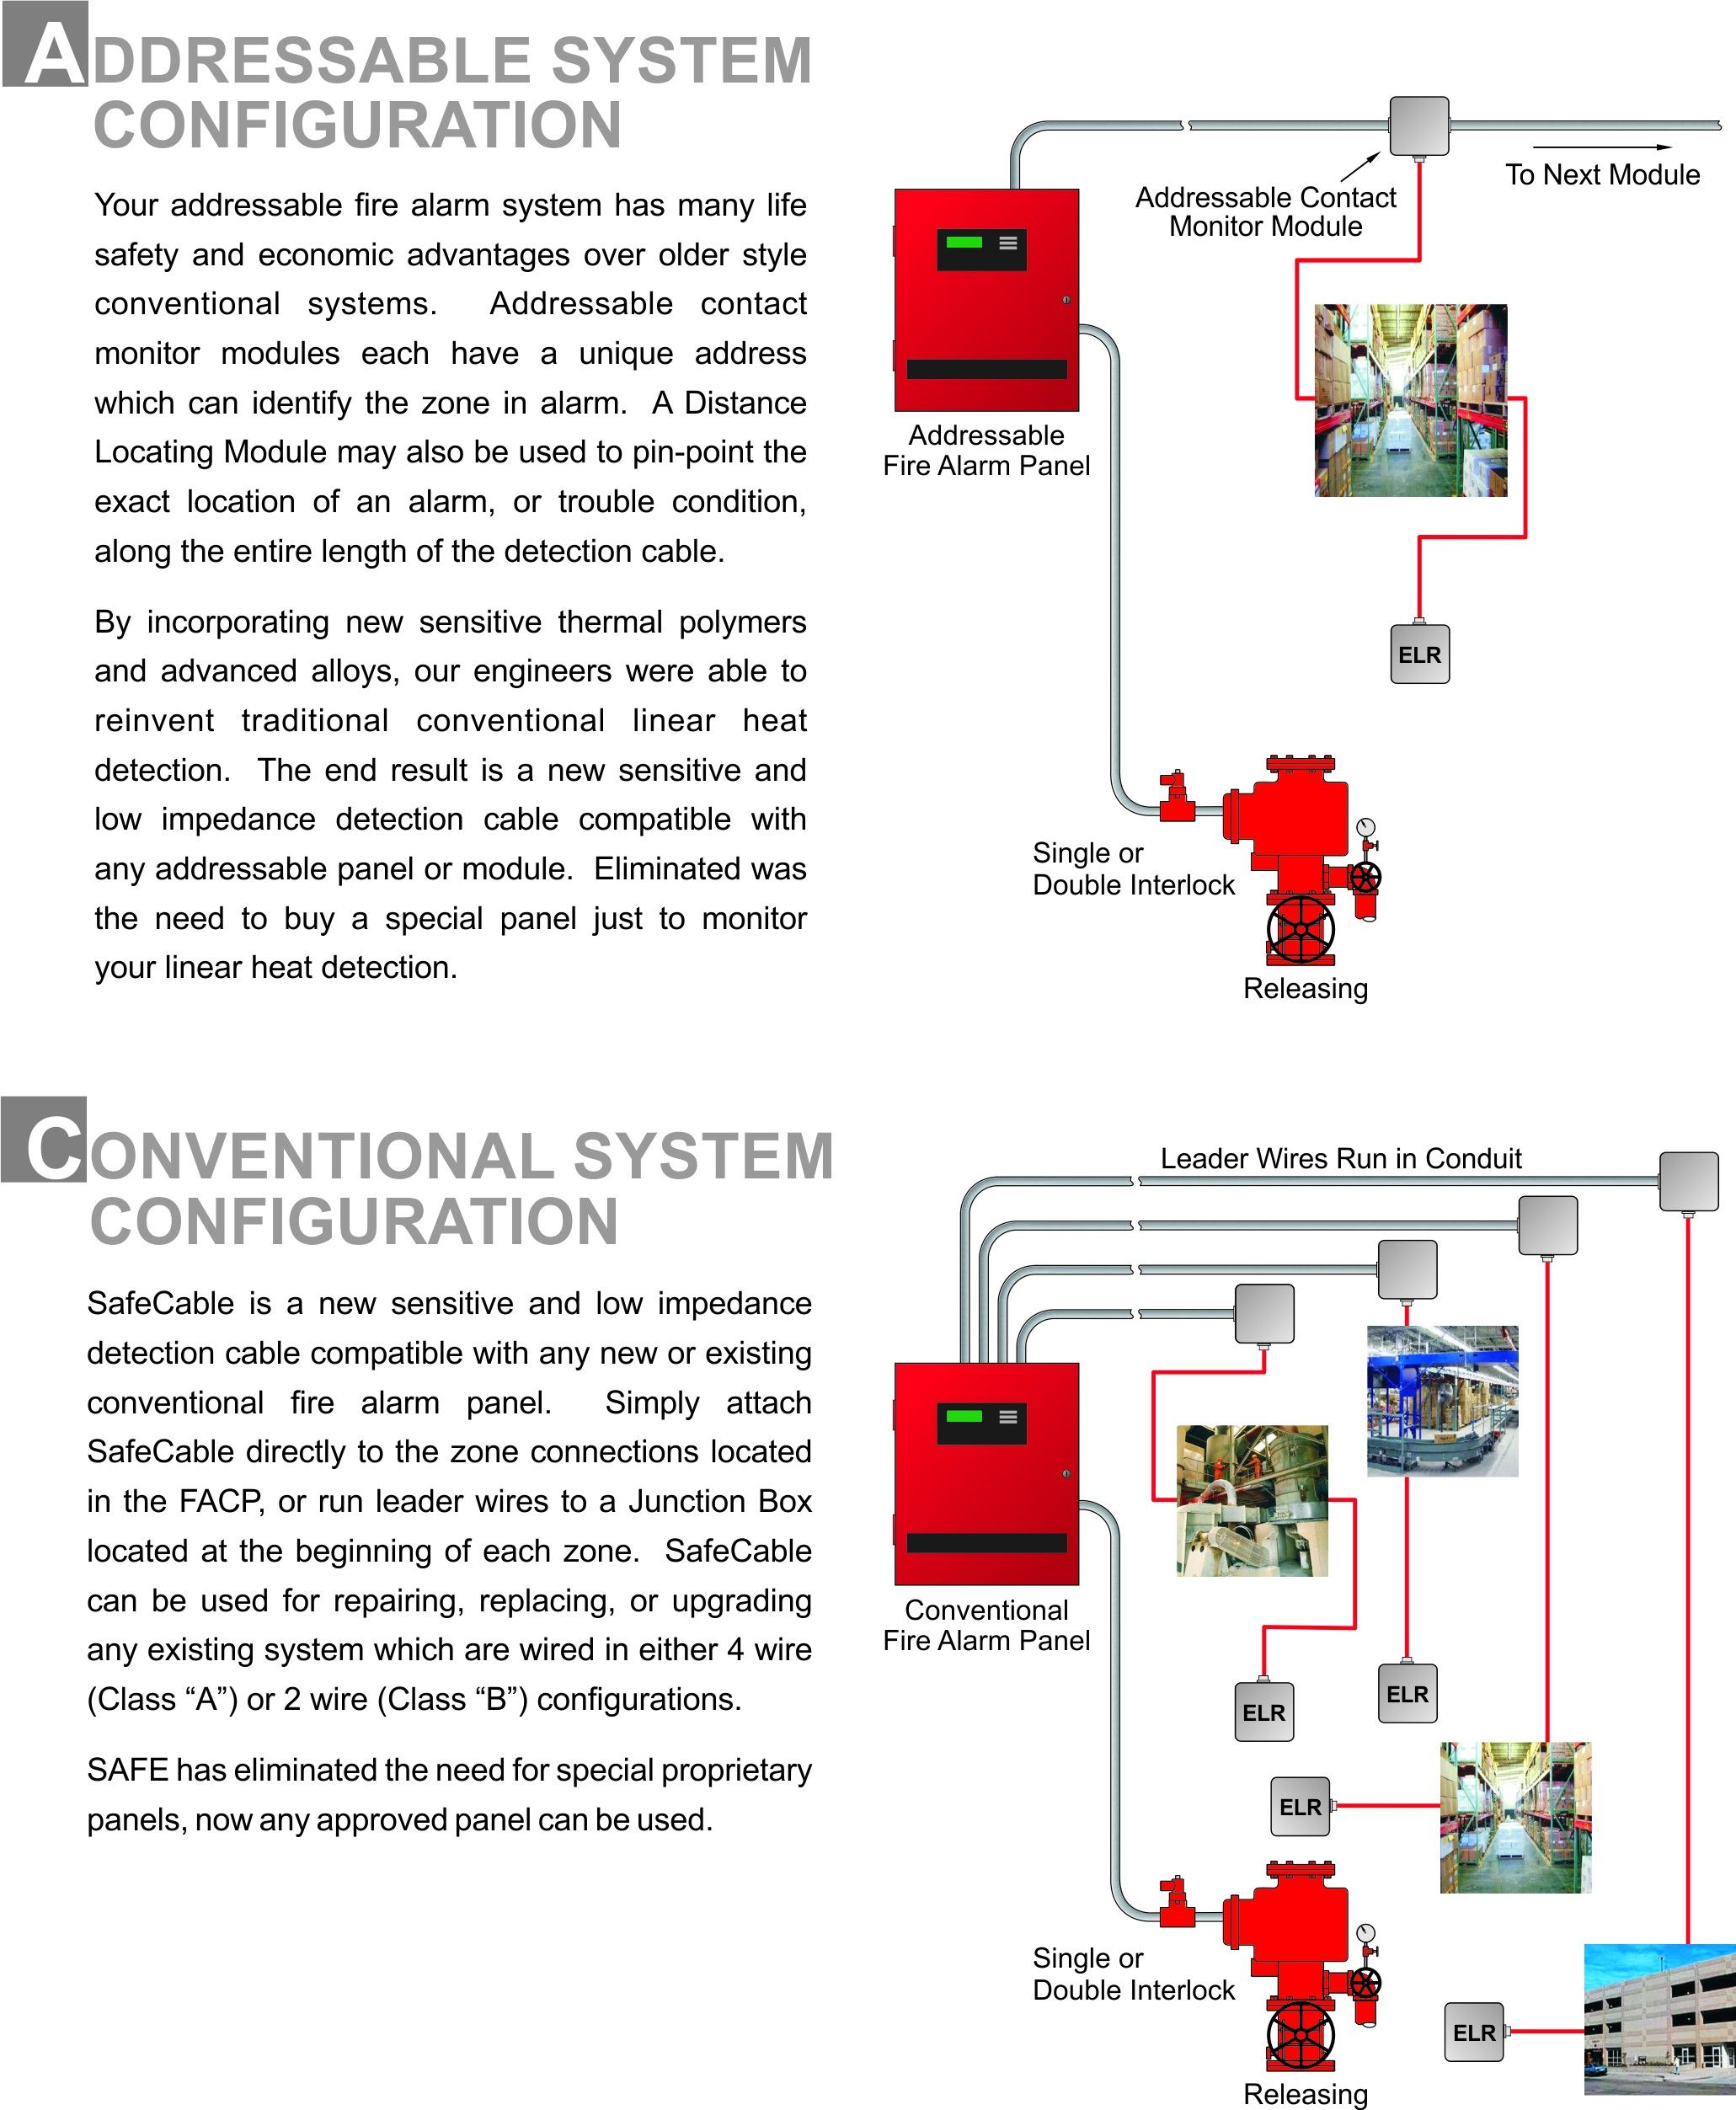 New Class A Wiring Diagram In Fire Alarm System Diagram Diagramtemplate Diagramsample Fire Alarm Fire Alarm System Alarm System